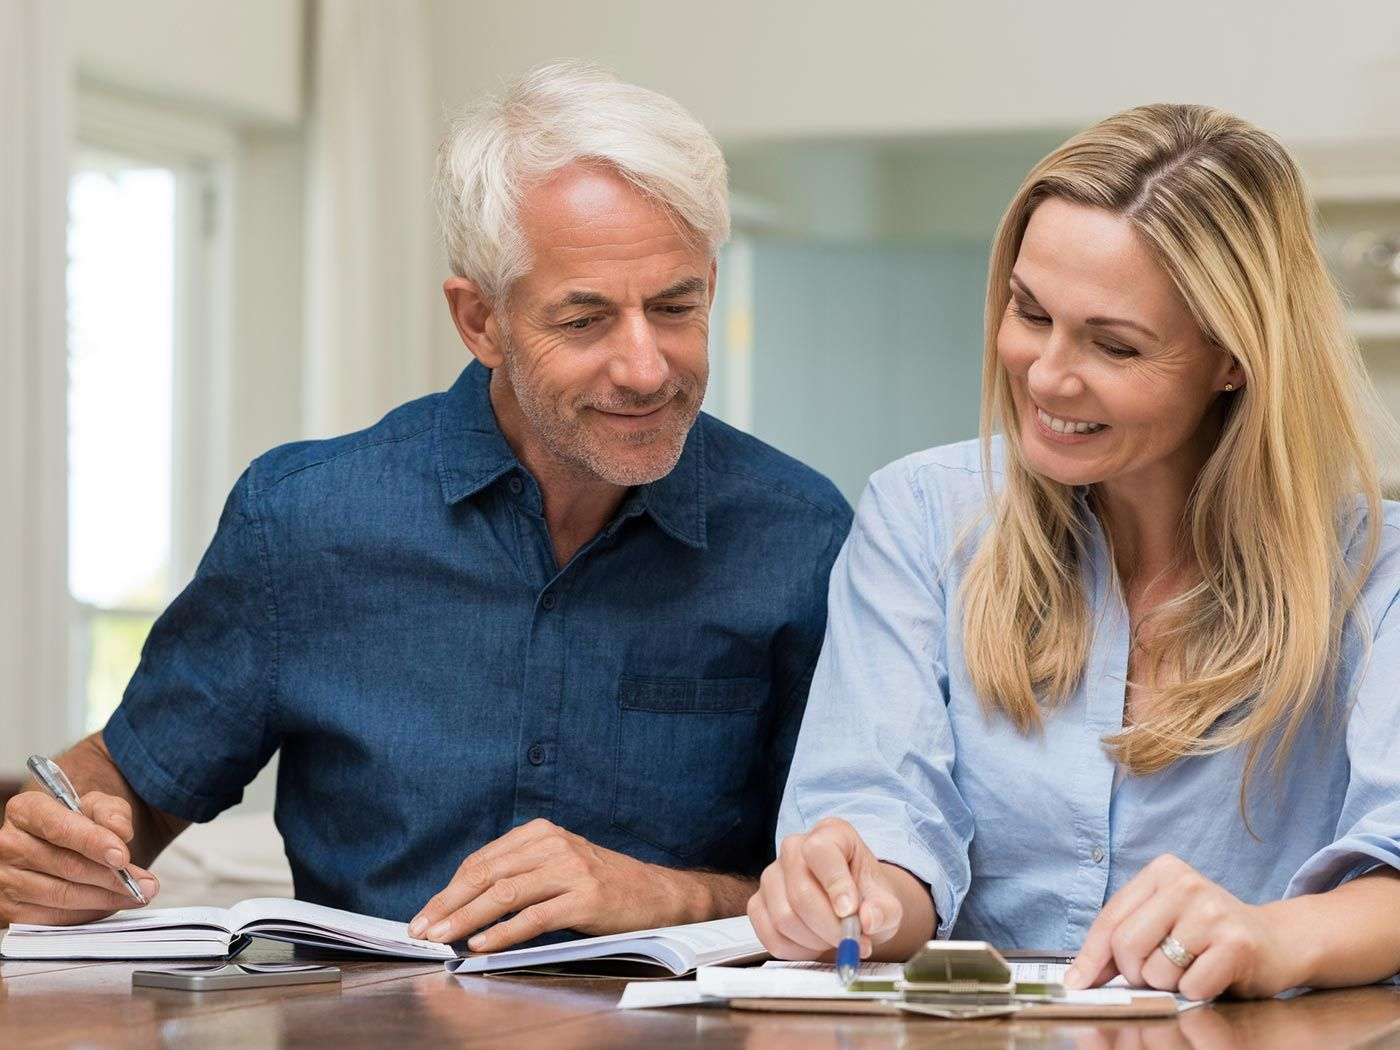 9 insurance tips to help you find the right coverage for